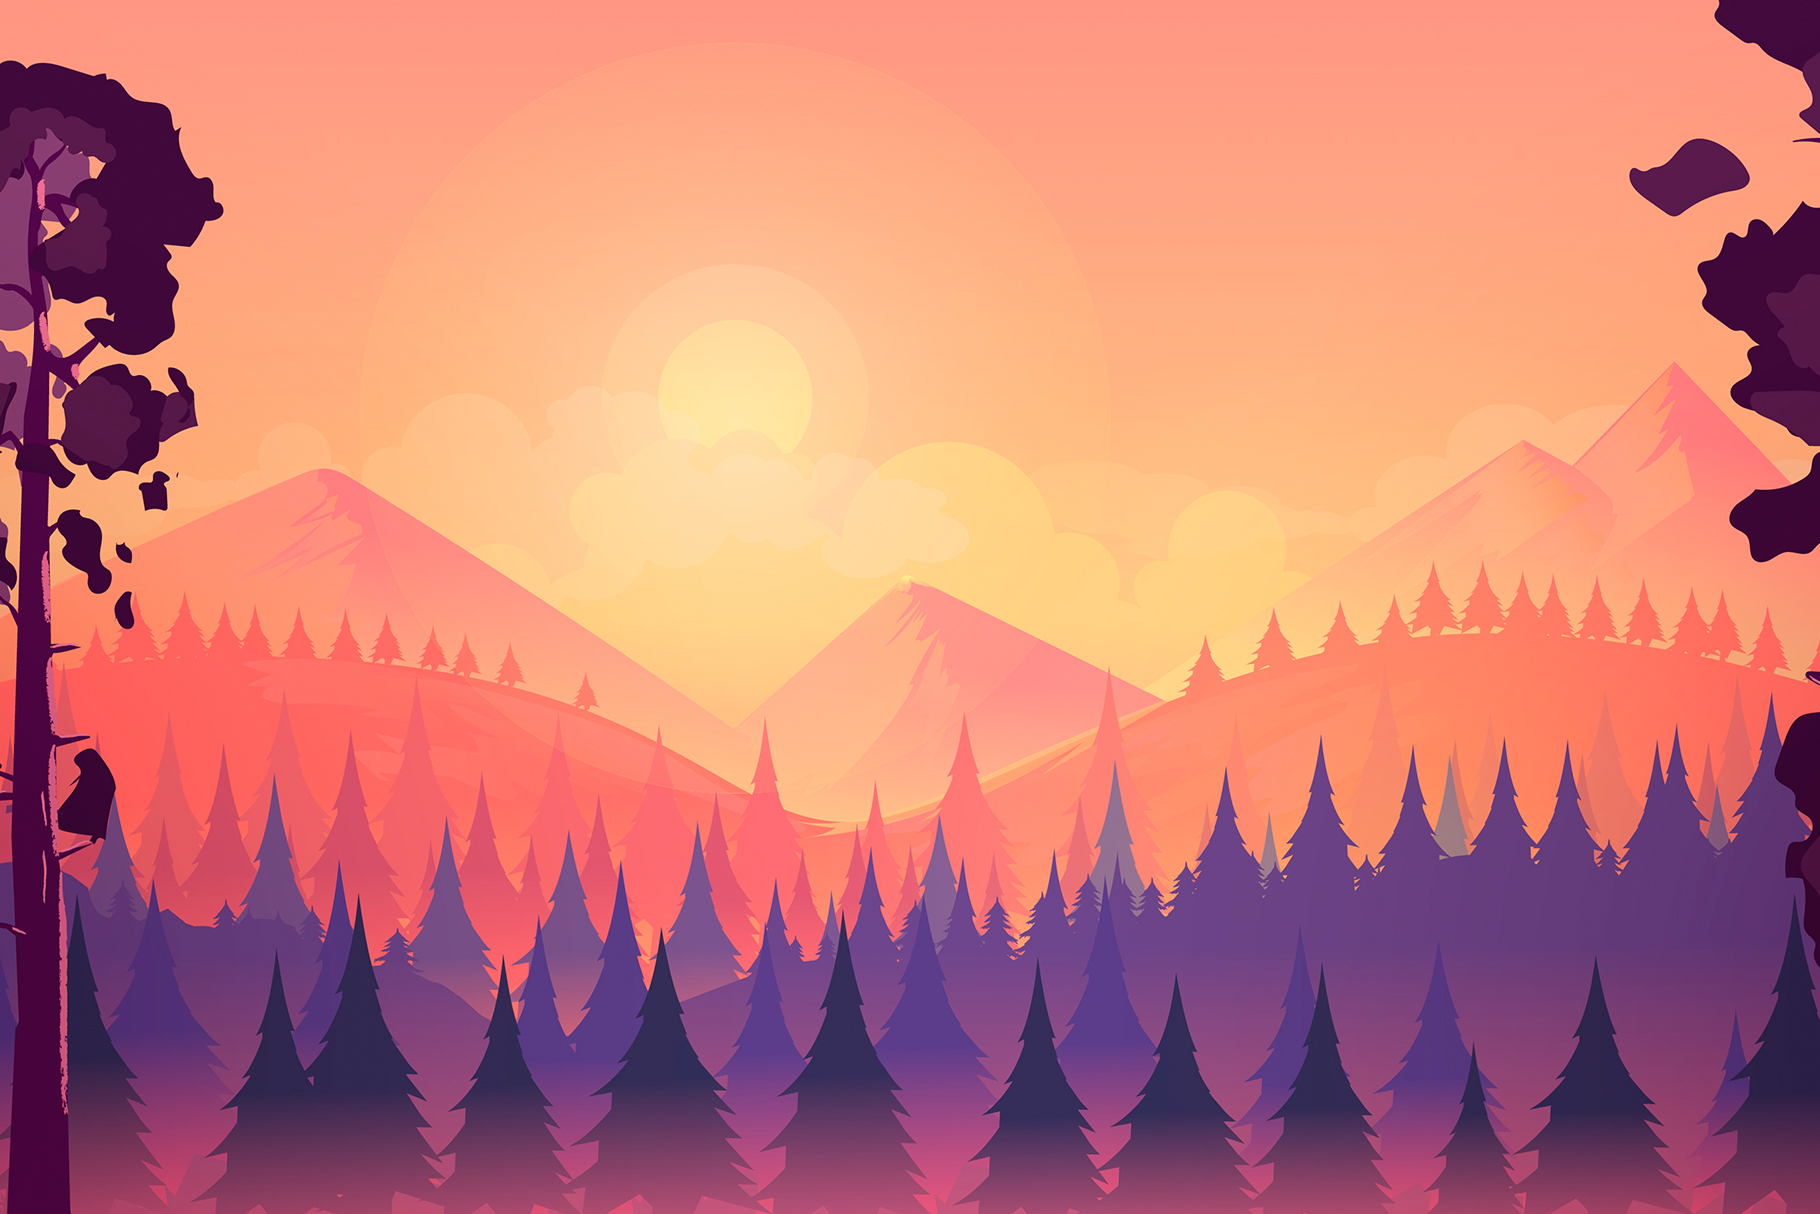 Sunset landscape with mountain and forest example image 1